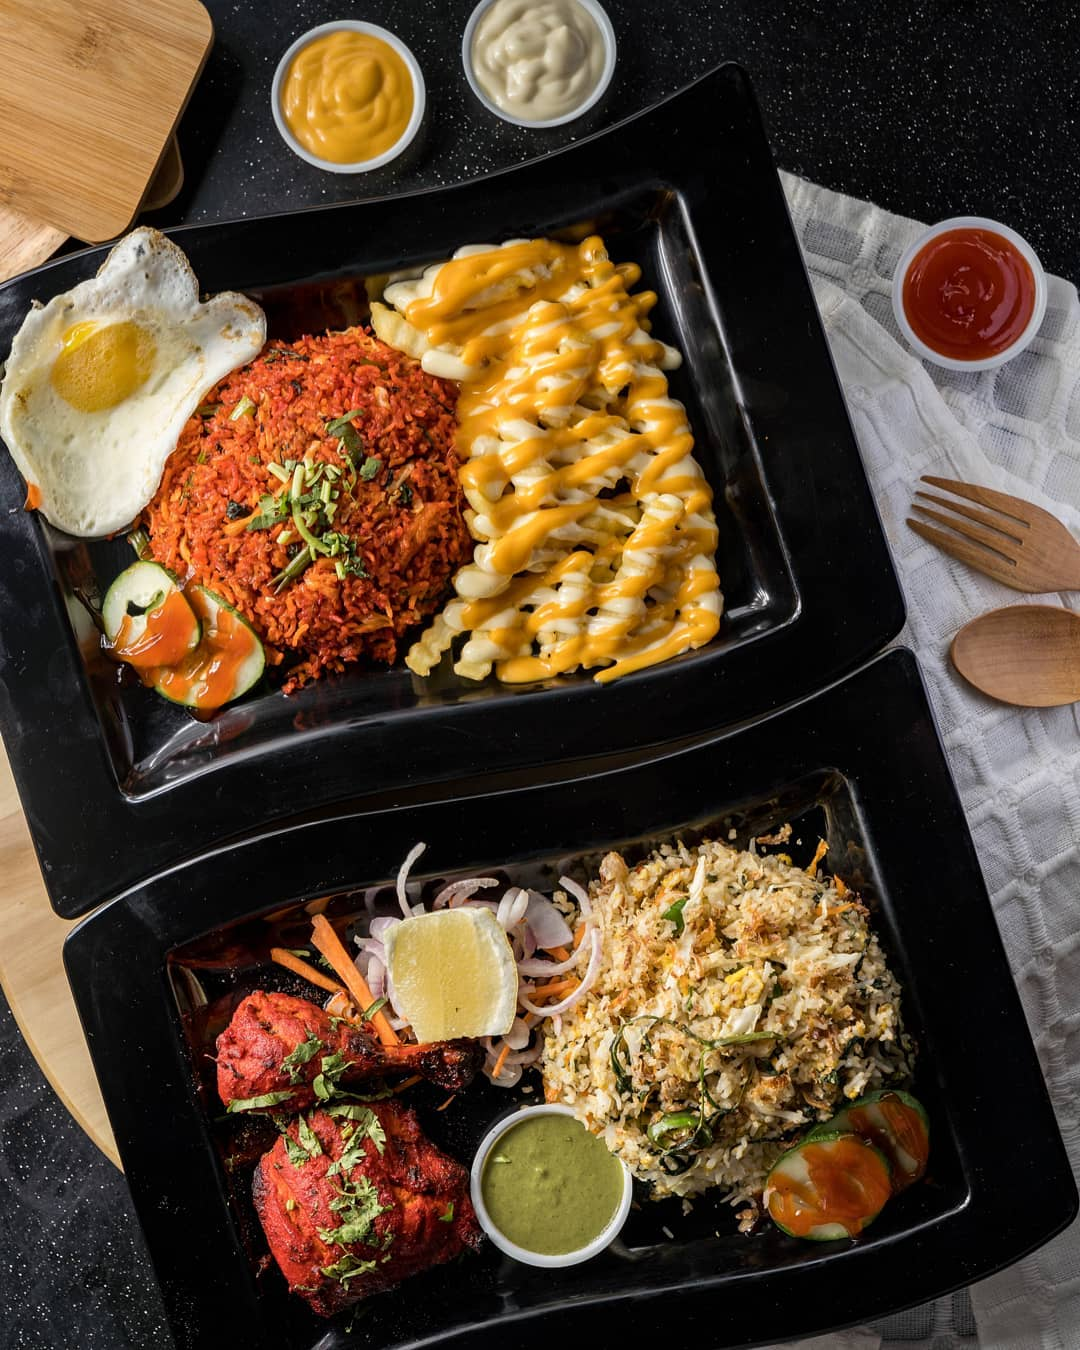 srisun express midnight & 24-hour food delivery